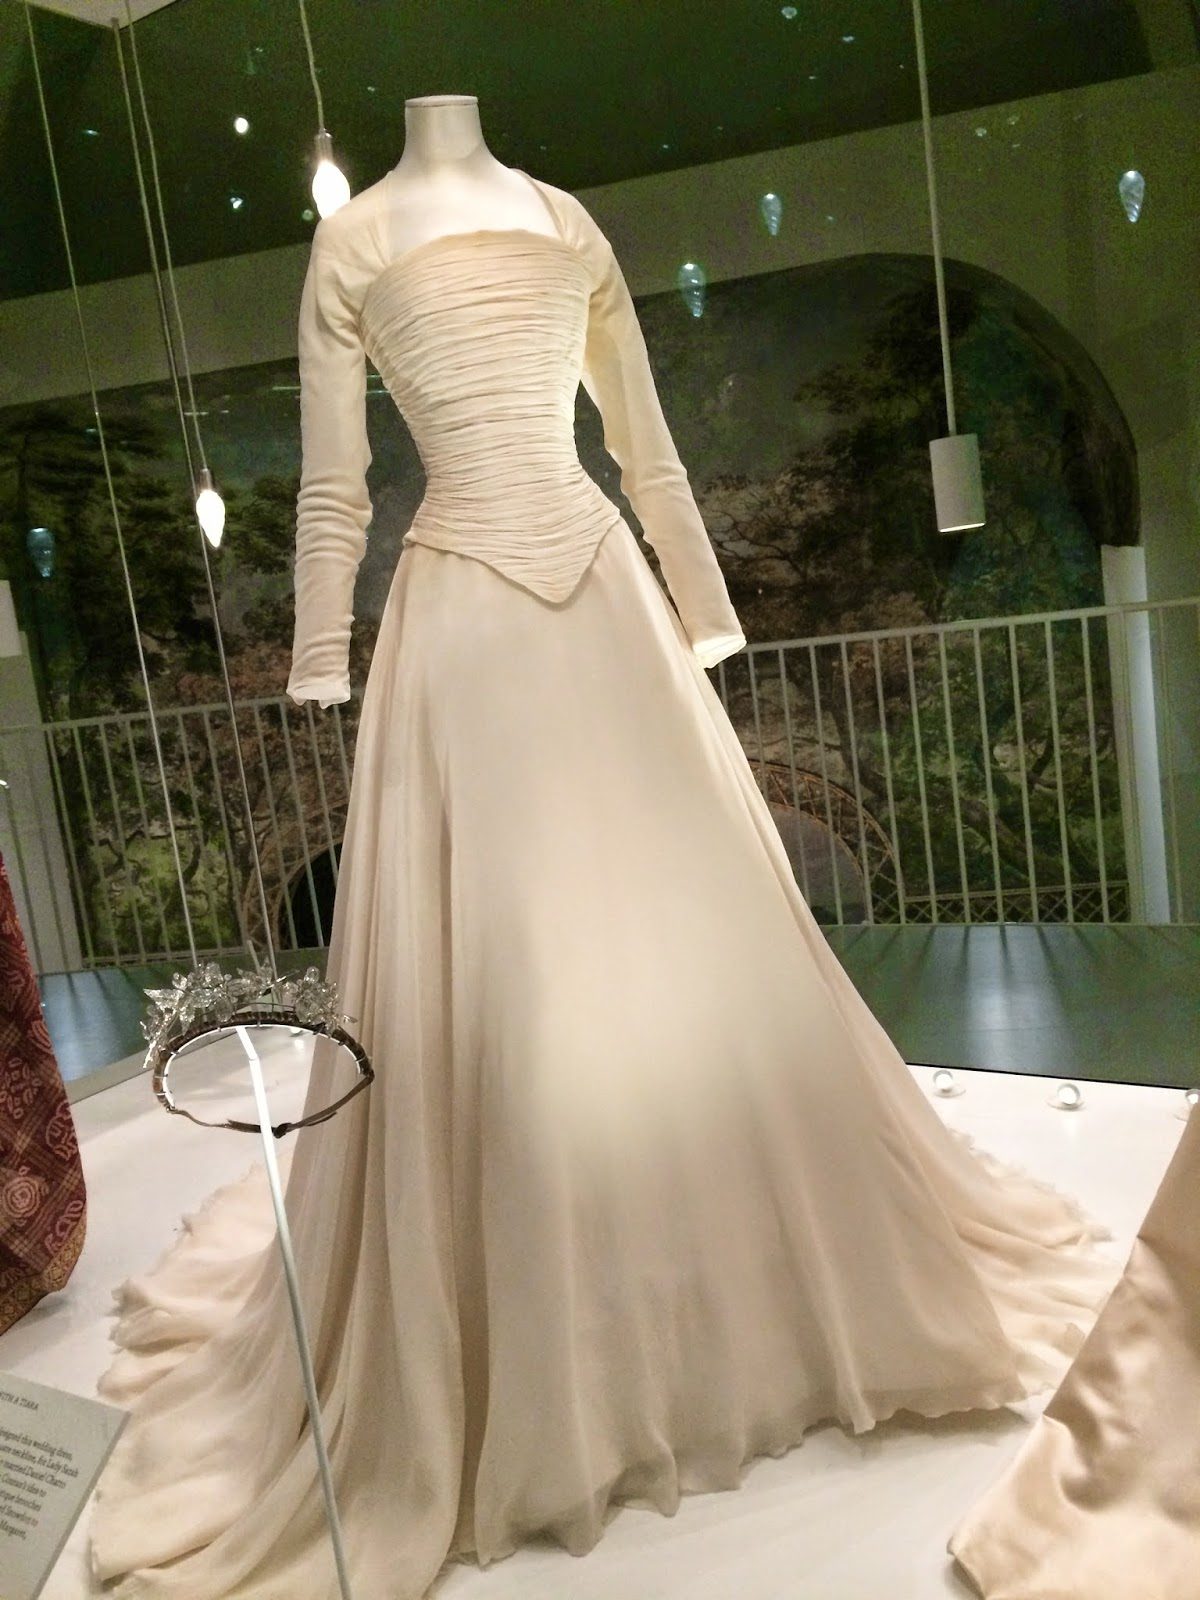 Love & Life in...: Wedding Dresses at the V&A